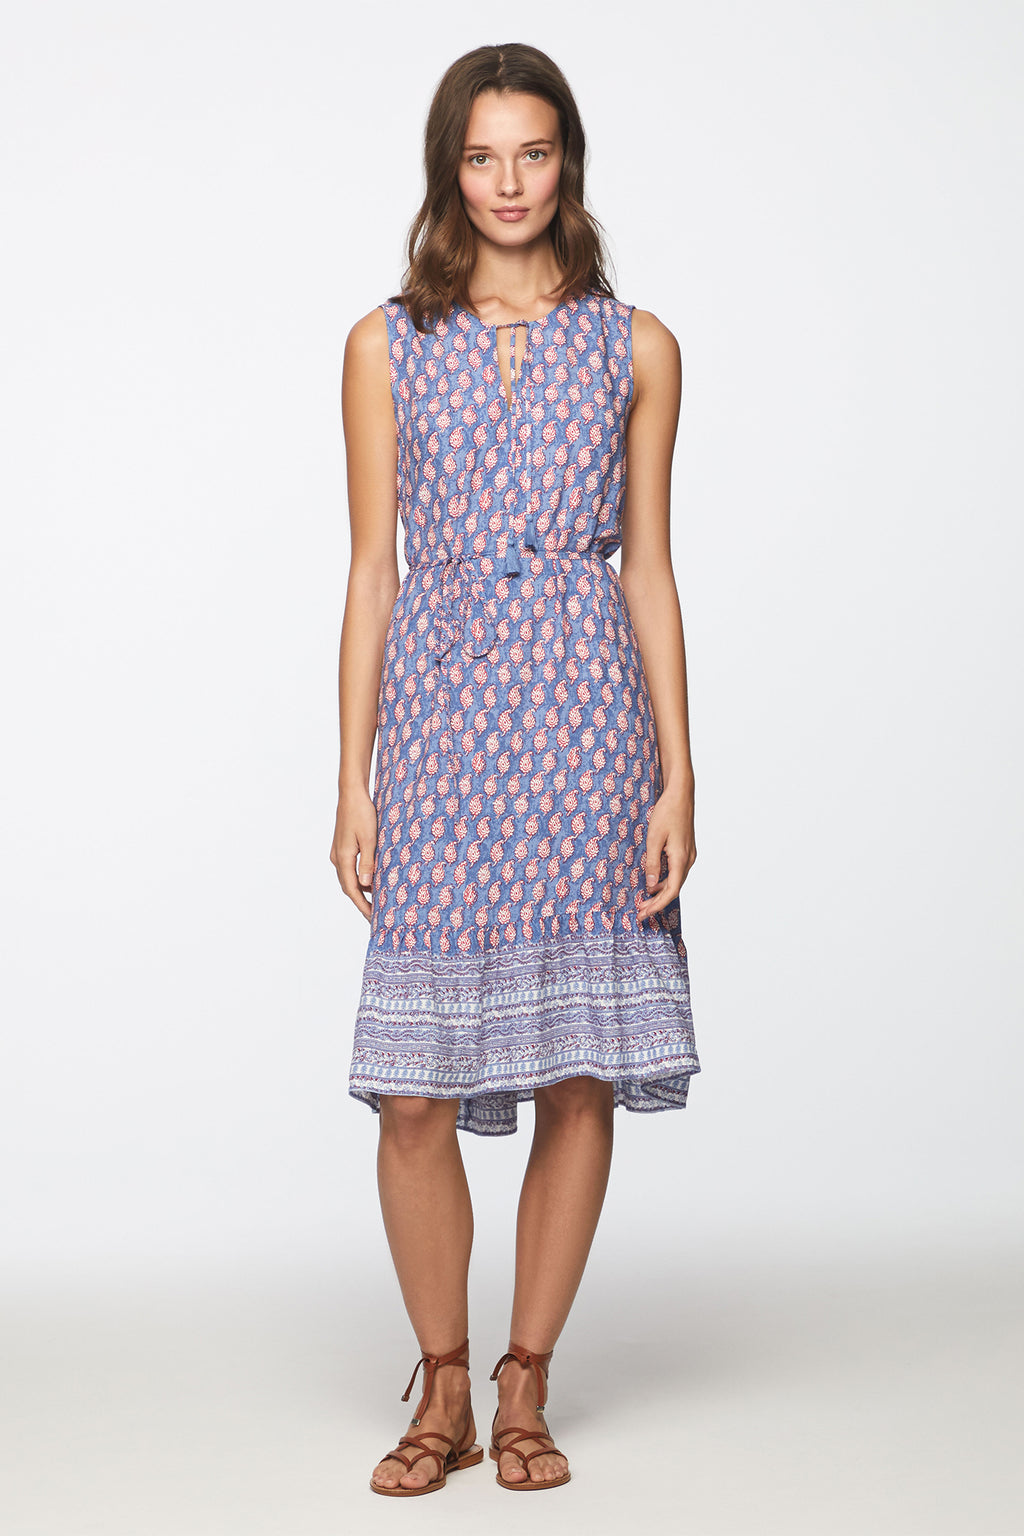 LOU LOU DRESS - BLUE PAISLEY